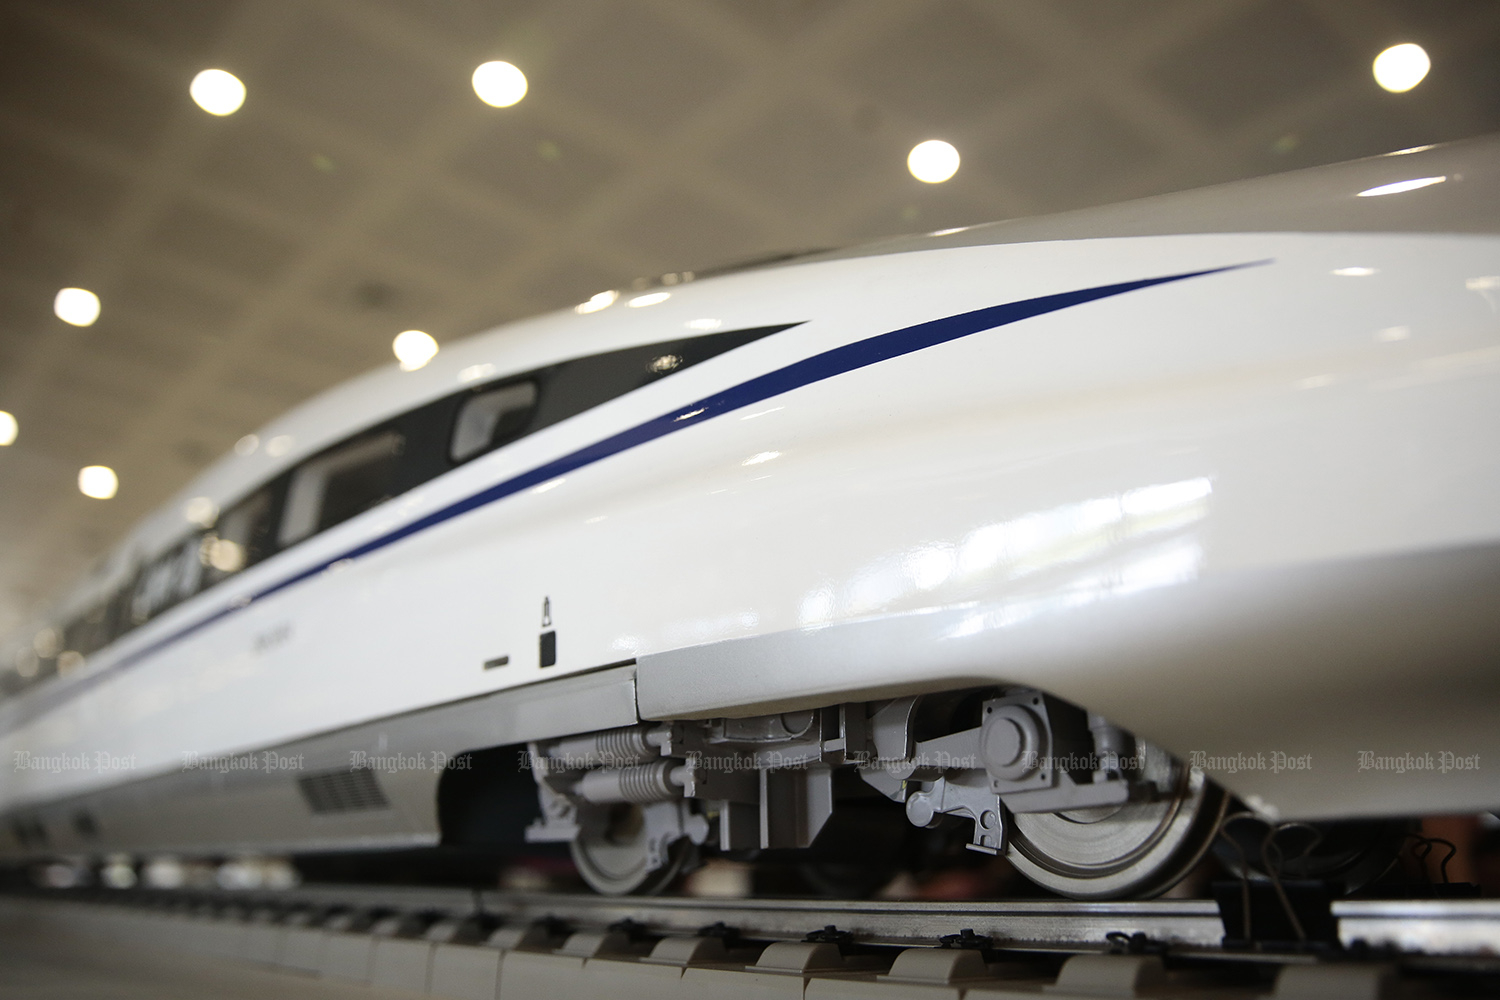 The high-speed train project to connect three main airports encounters land expropriation and eviction problems. (Photo by Patipat Janthong)